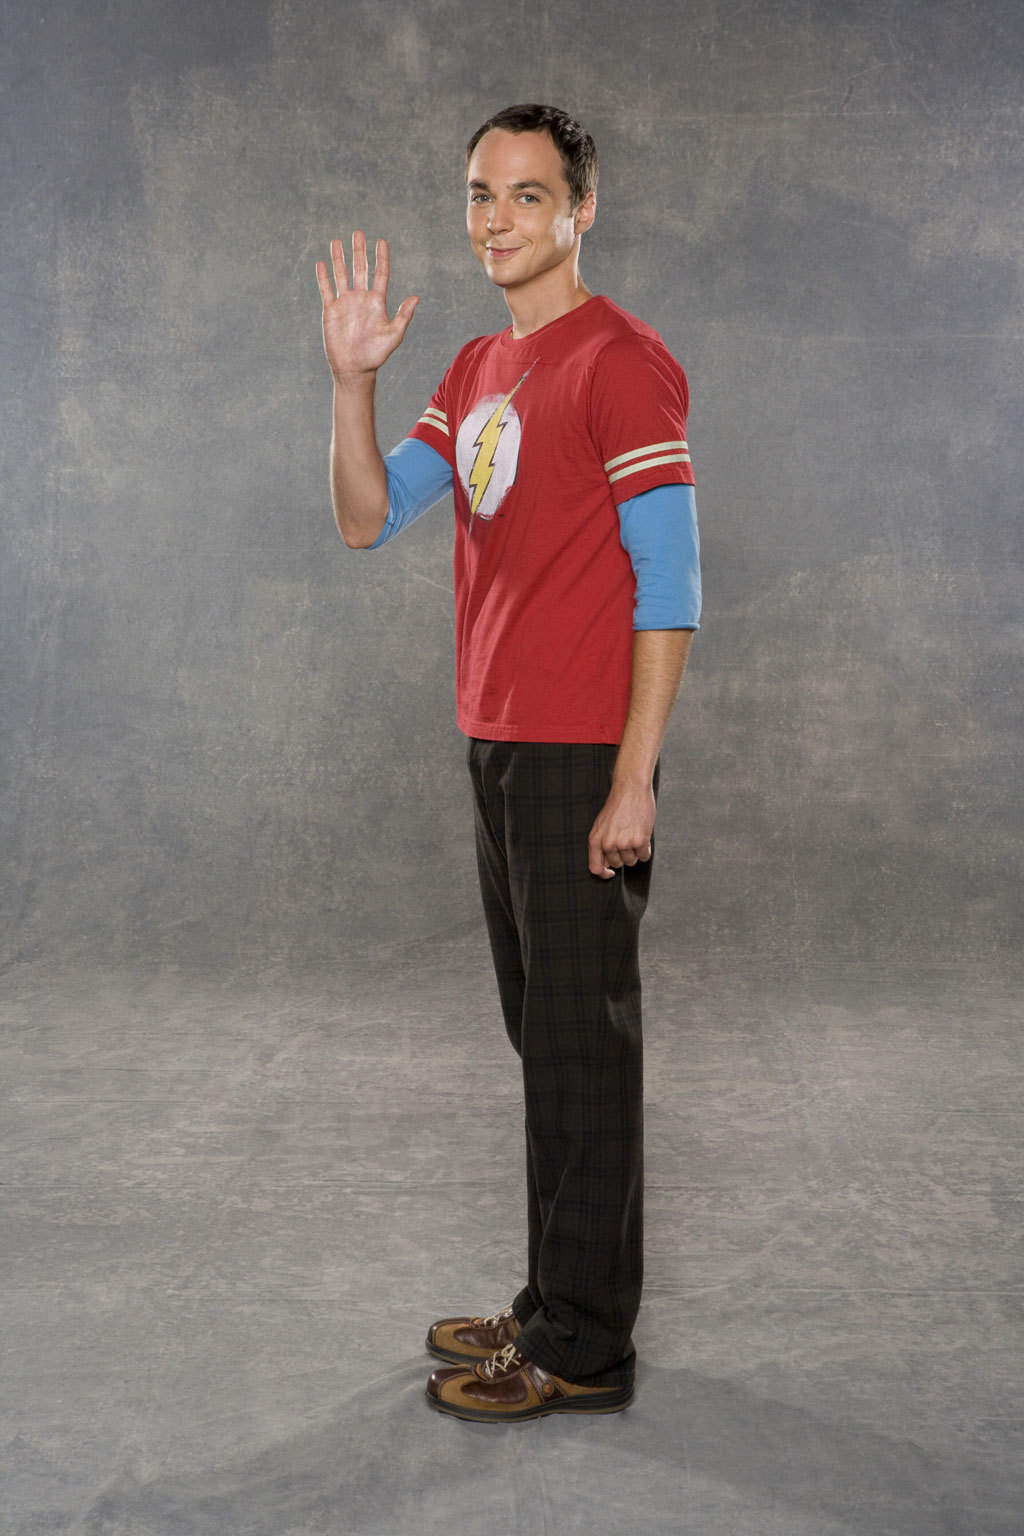 promotional-photos-from-dvd-extras-sheldon-cooper-8850998-1024-1556